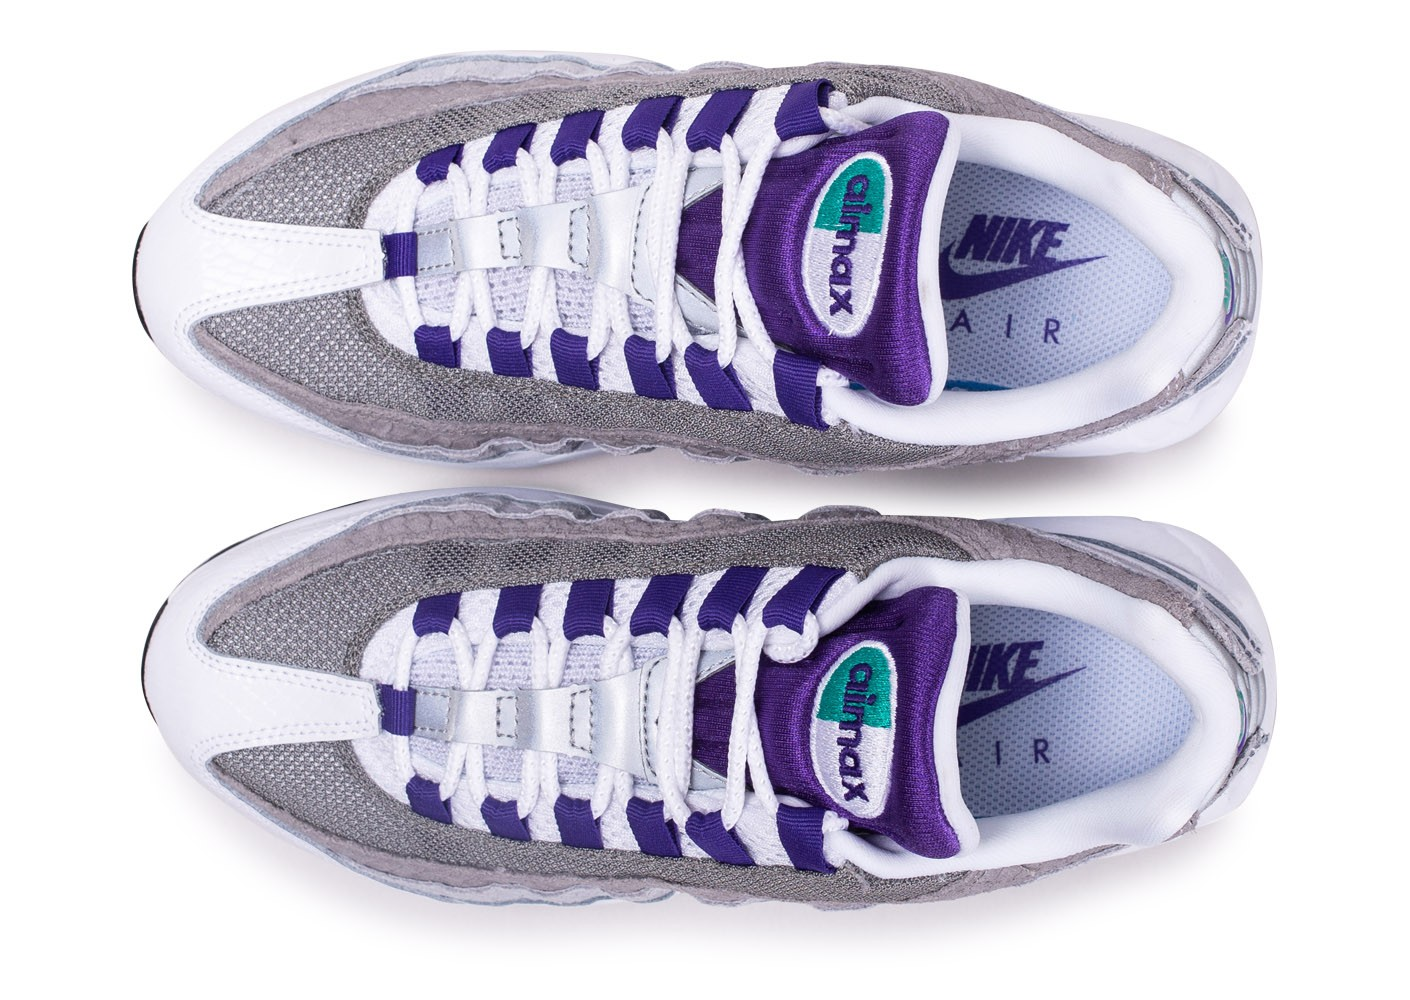 code promo 60b26 859dc Nike Air Max 95 Blanche Grise Violette et Verte - Chaussures ...